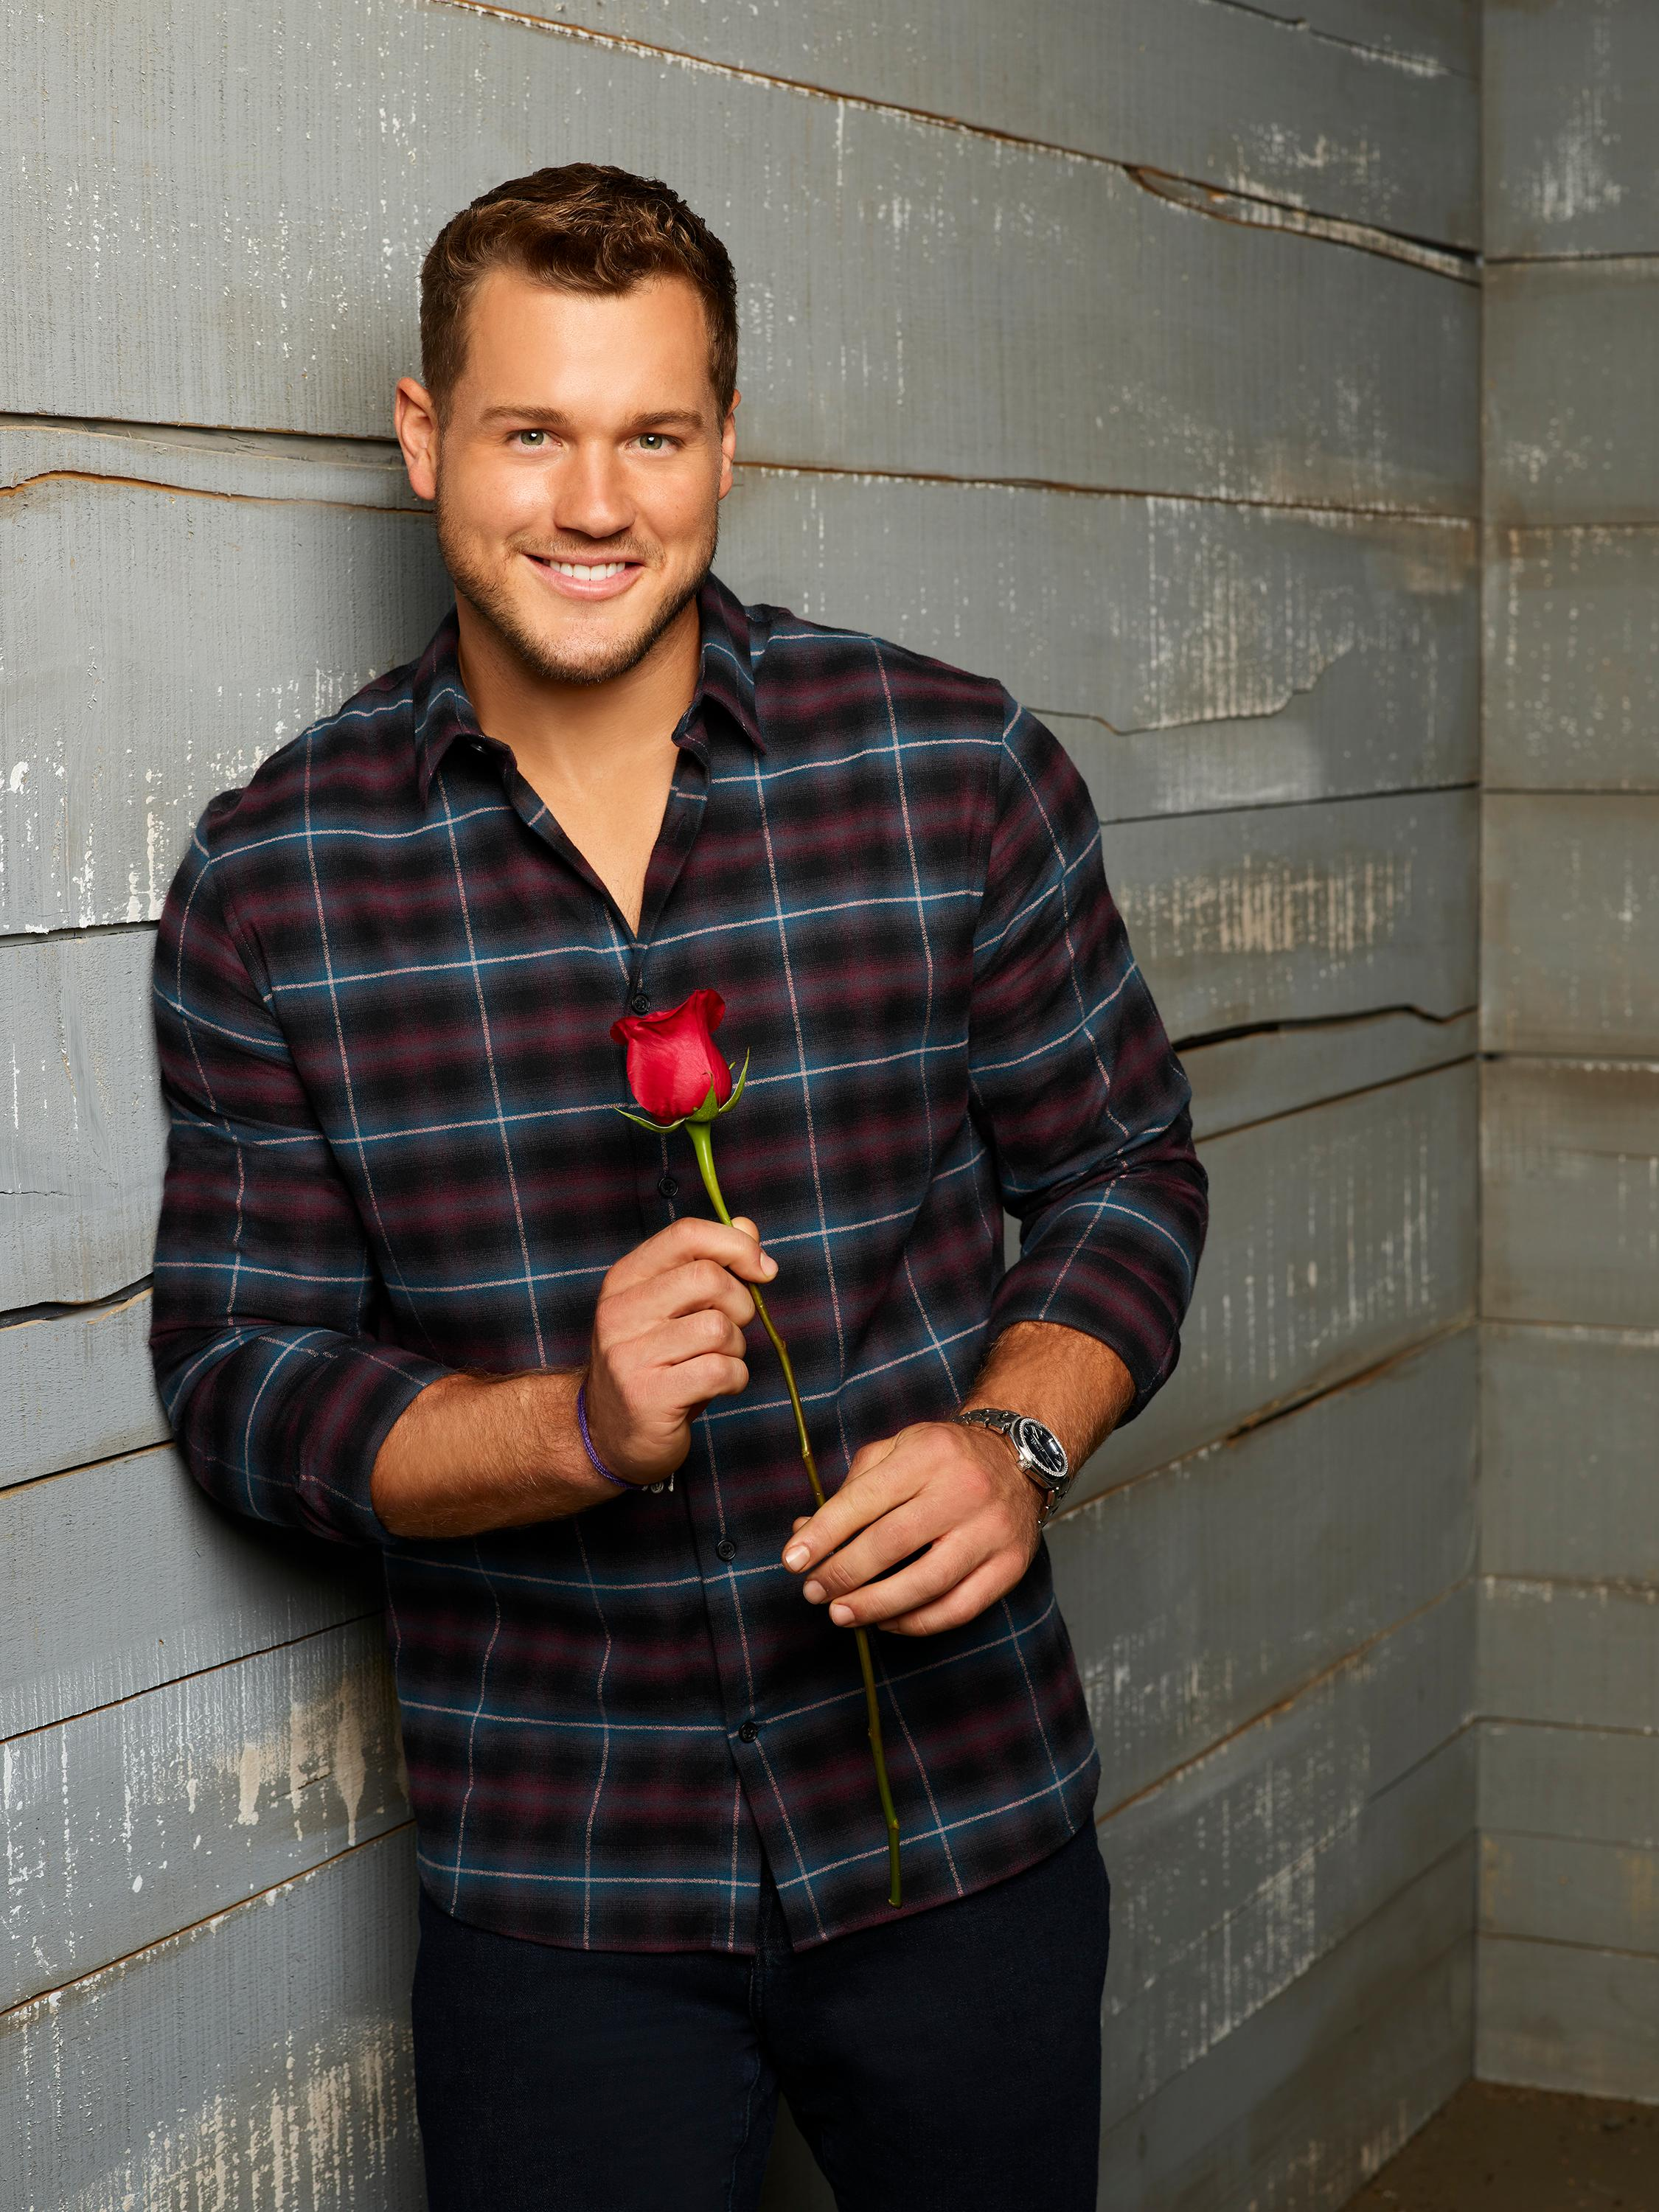 This all-American is looking for a teammate who will join him for a life full of adventure, philanthropy and lasting love; and he is confident that he will find her on The Bachelor. (Image: ABC/Craig Sjodin)